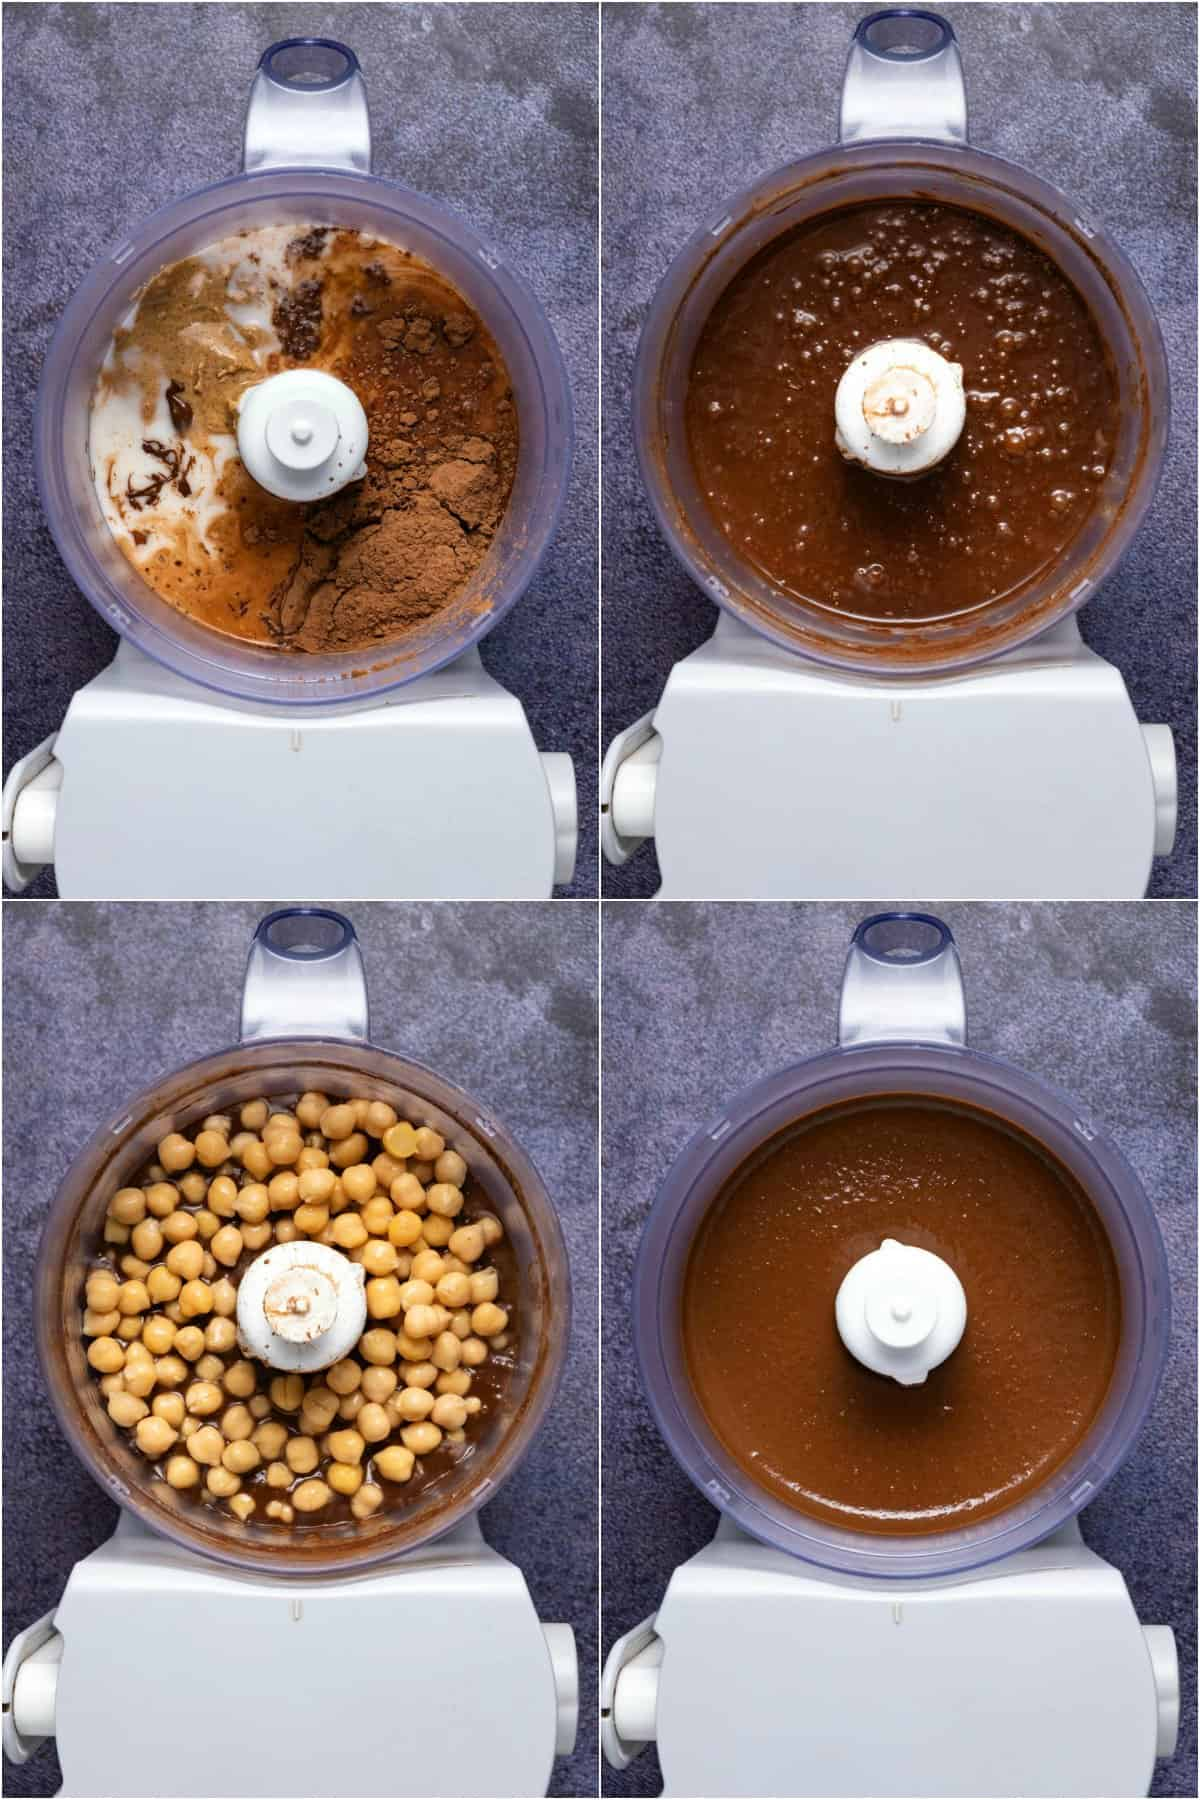 Step by step process photo collage of making chocolate hummus.